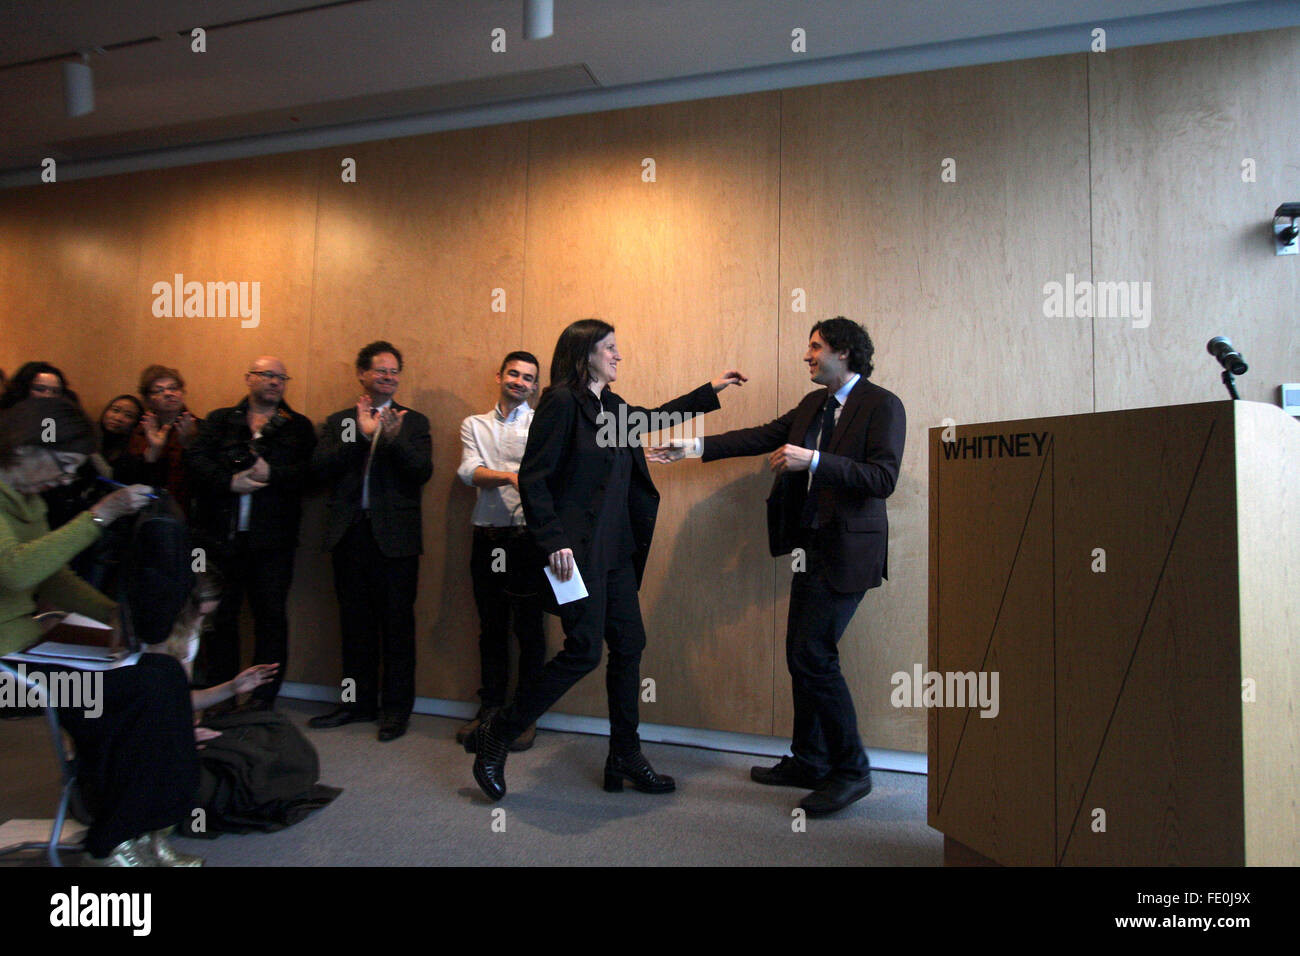 New York City, NY, USA. 3rd February, 2016. Laura Poitras being welcomed by Jay Sanders, Curator and Curator of - Stock Image